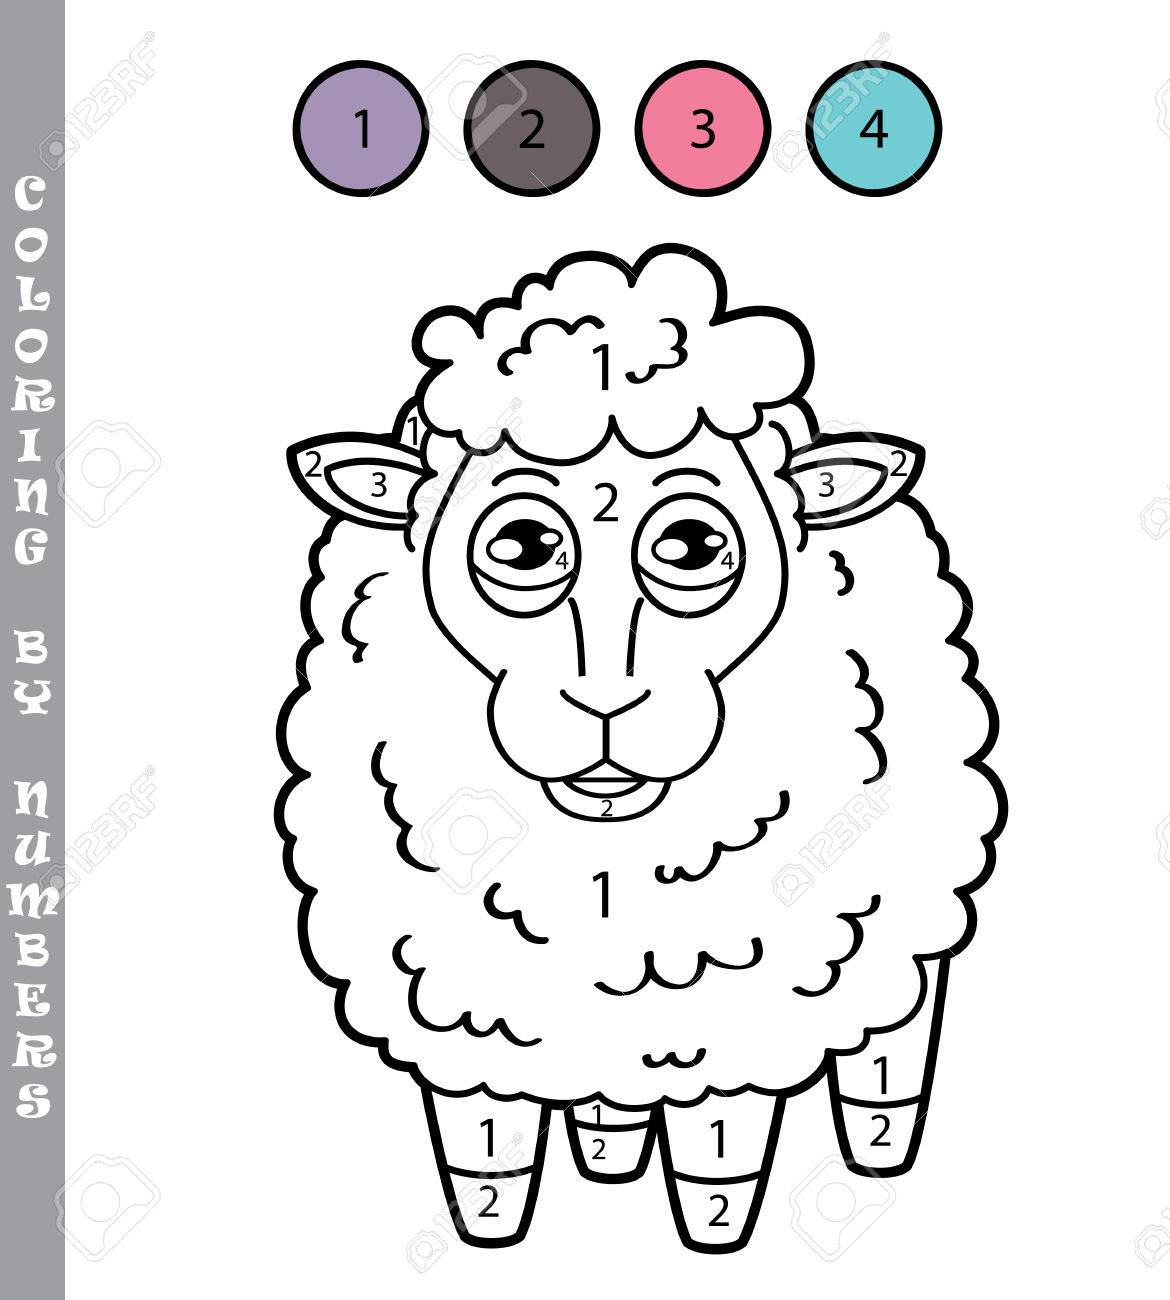 Coloring By Numbers Game. Vector Illustration Of Coloring Game ...